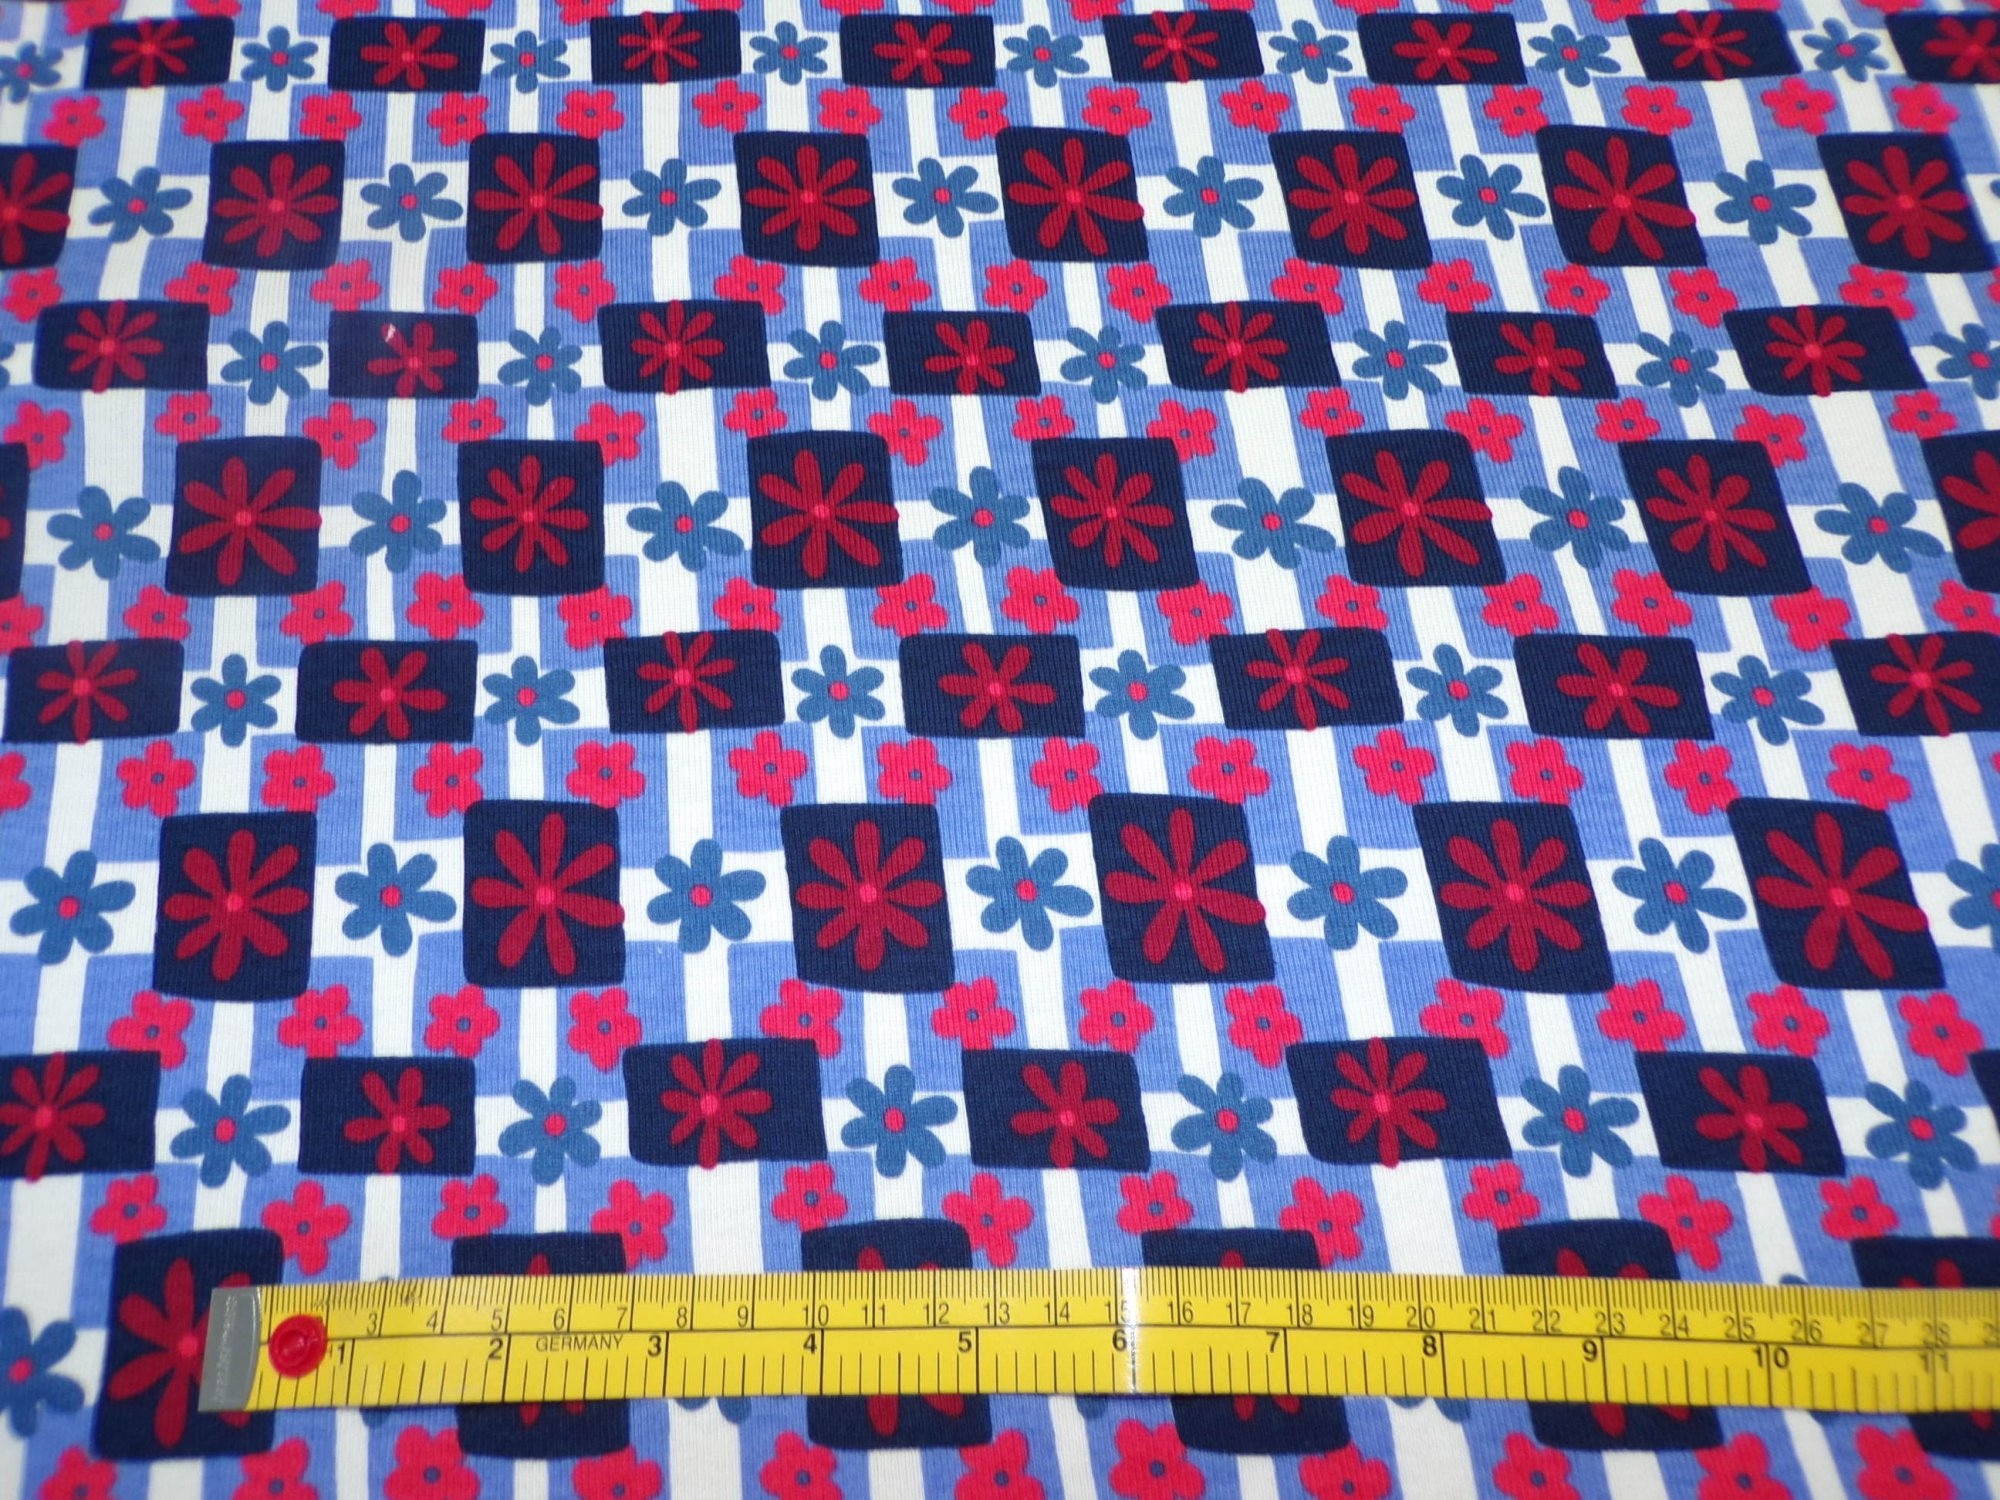 Cotton Ribbed Knit - Red White and Blue Floral Plaid